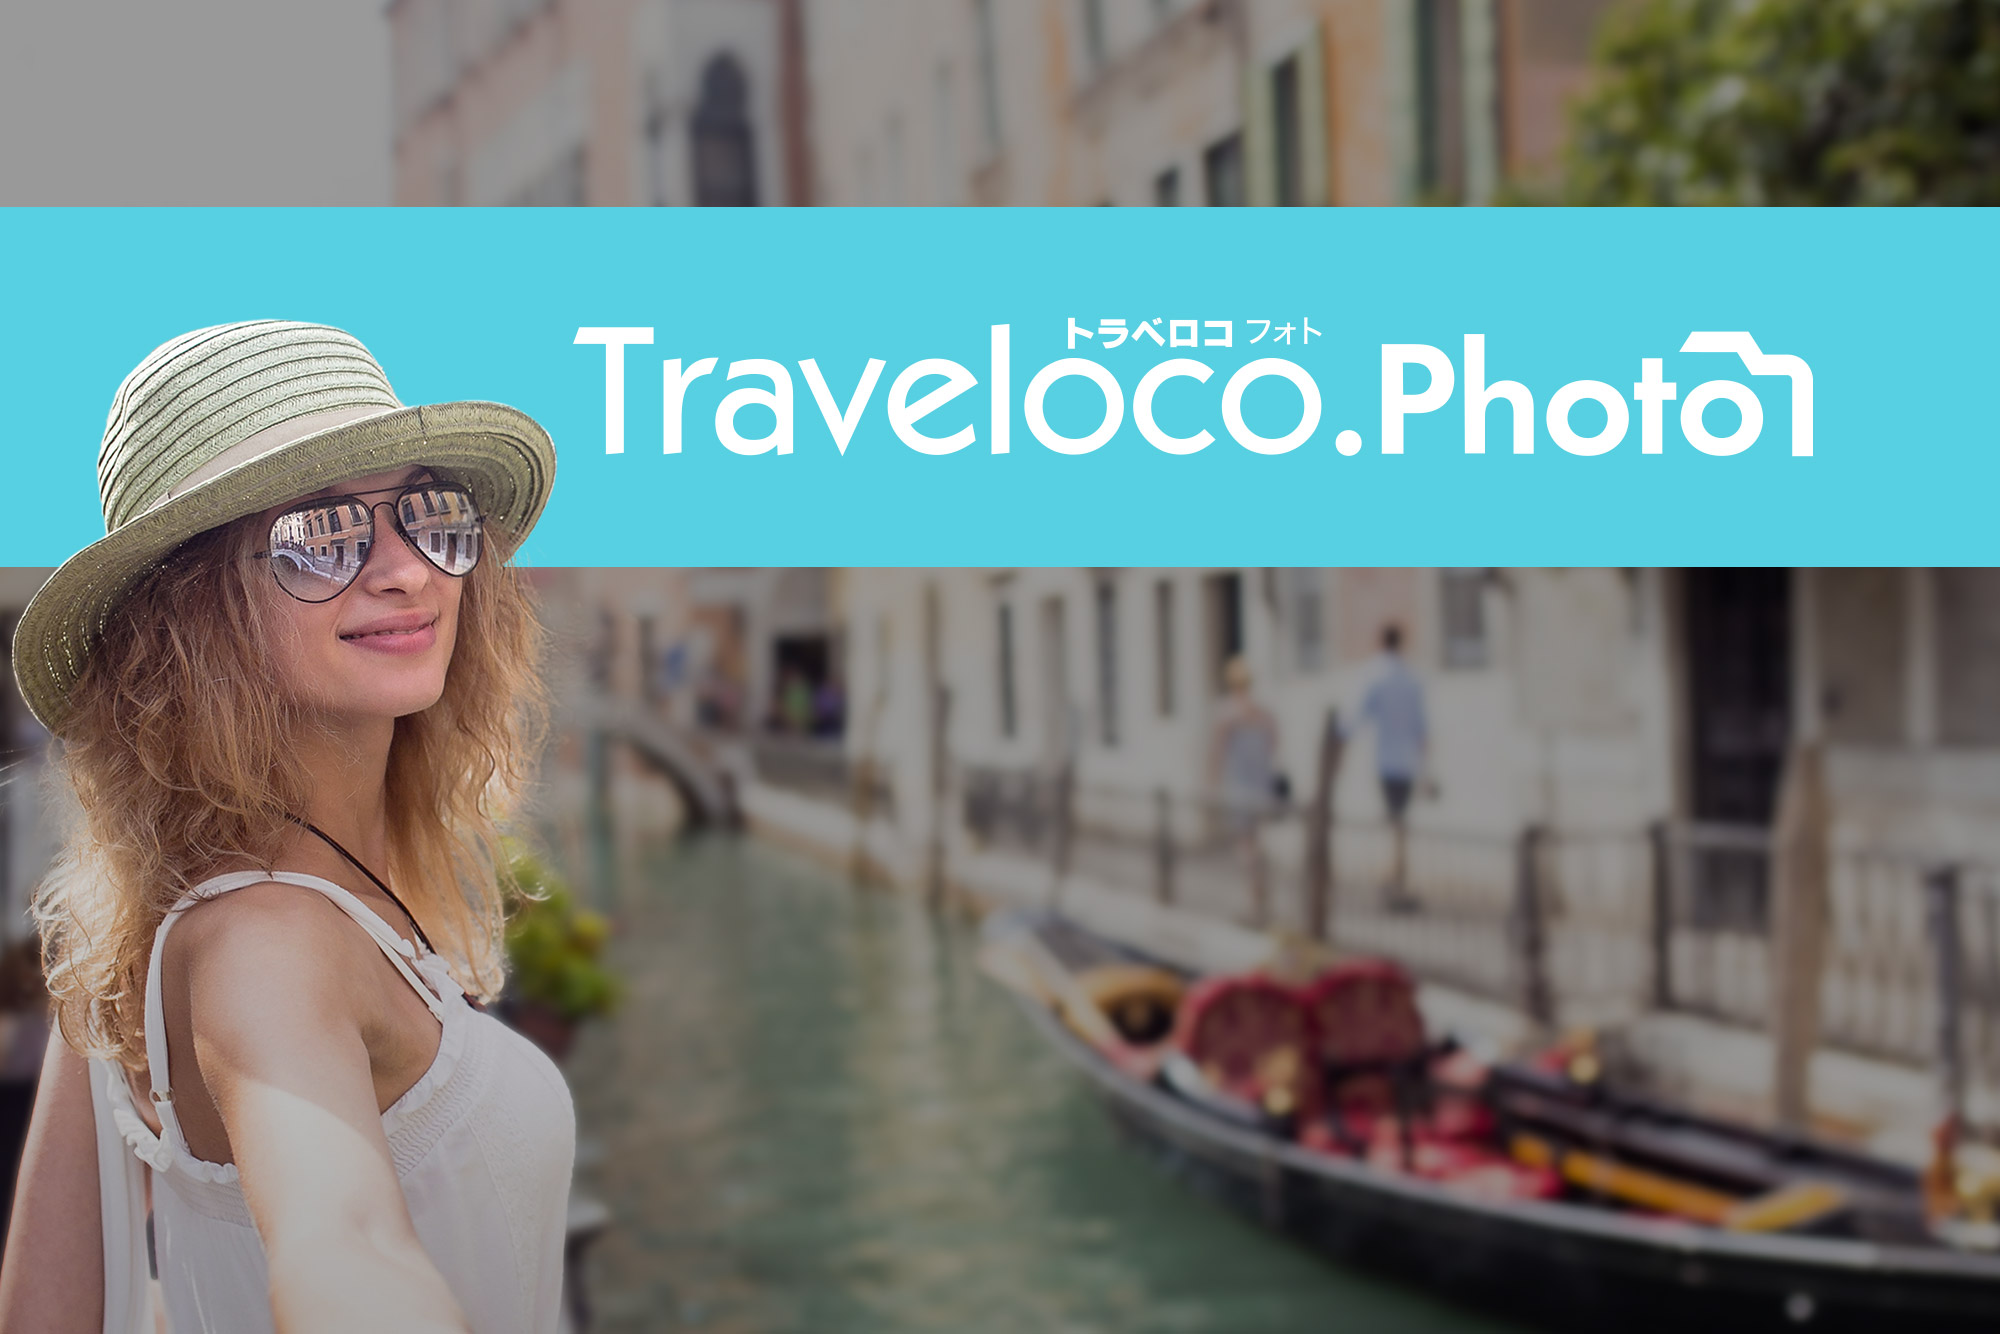 Traveloco photo